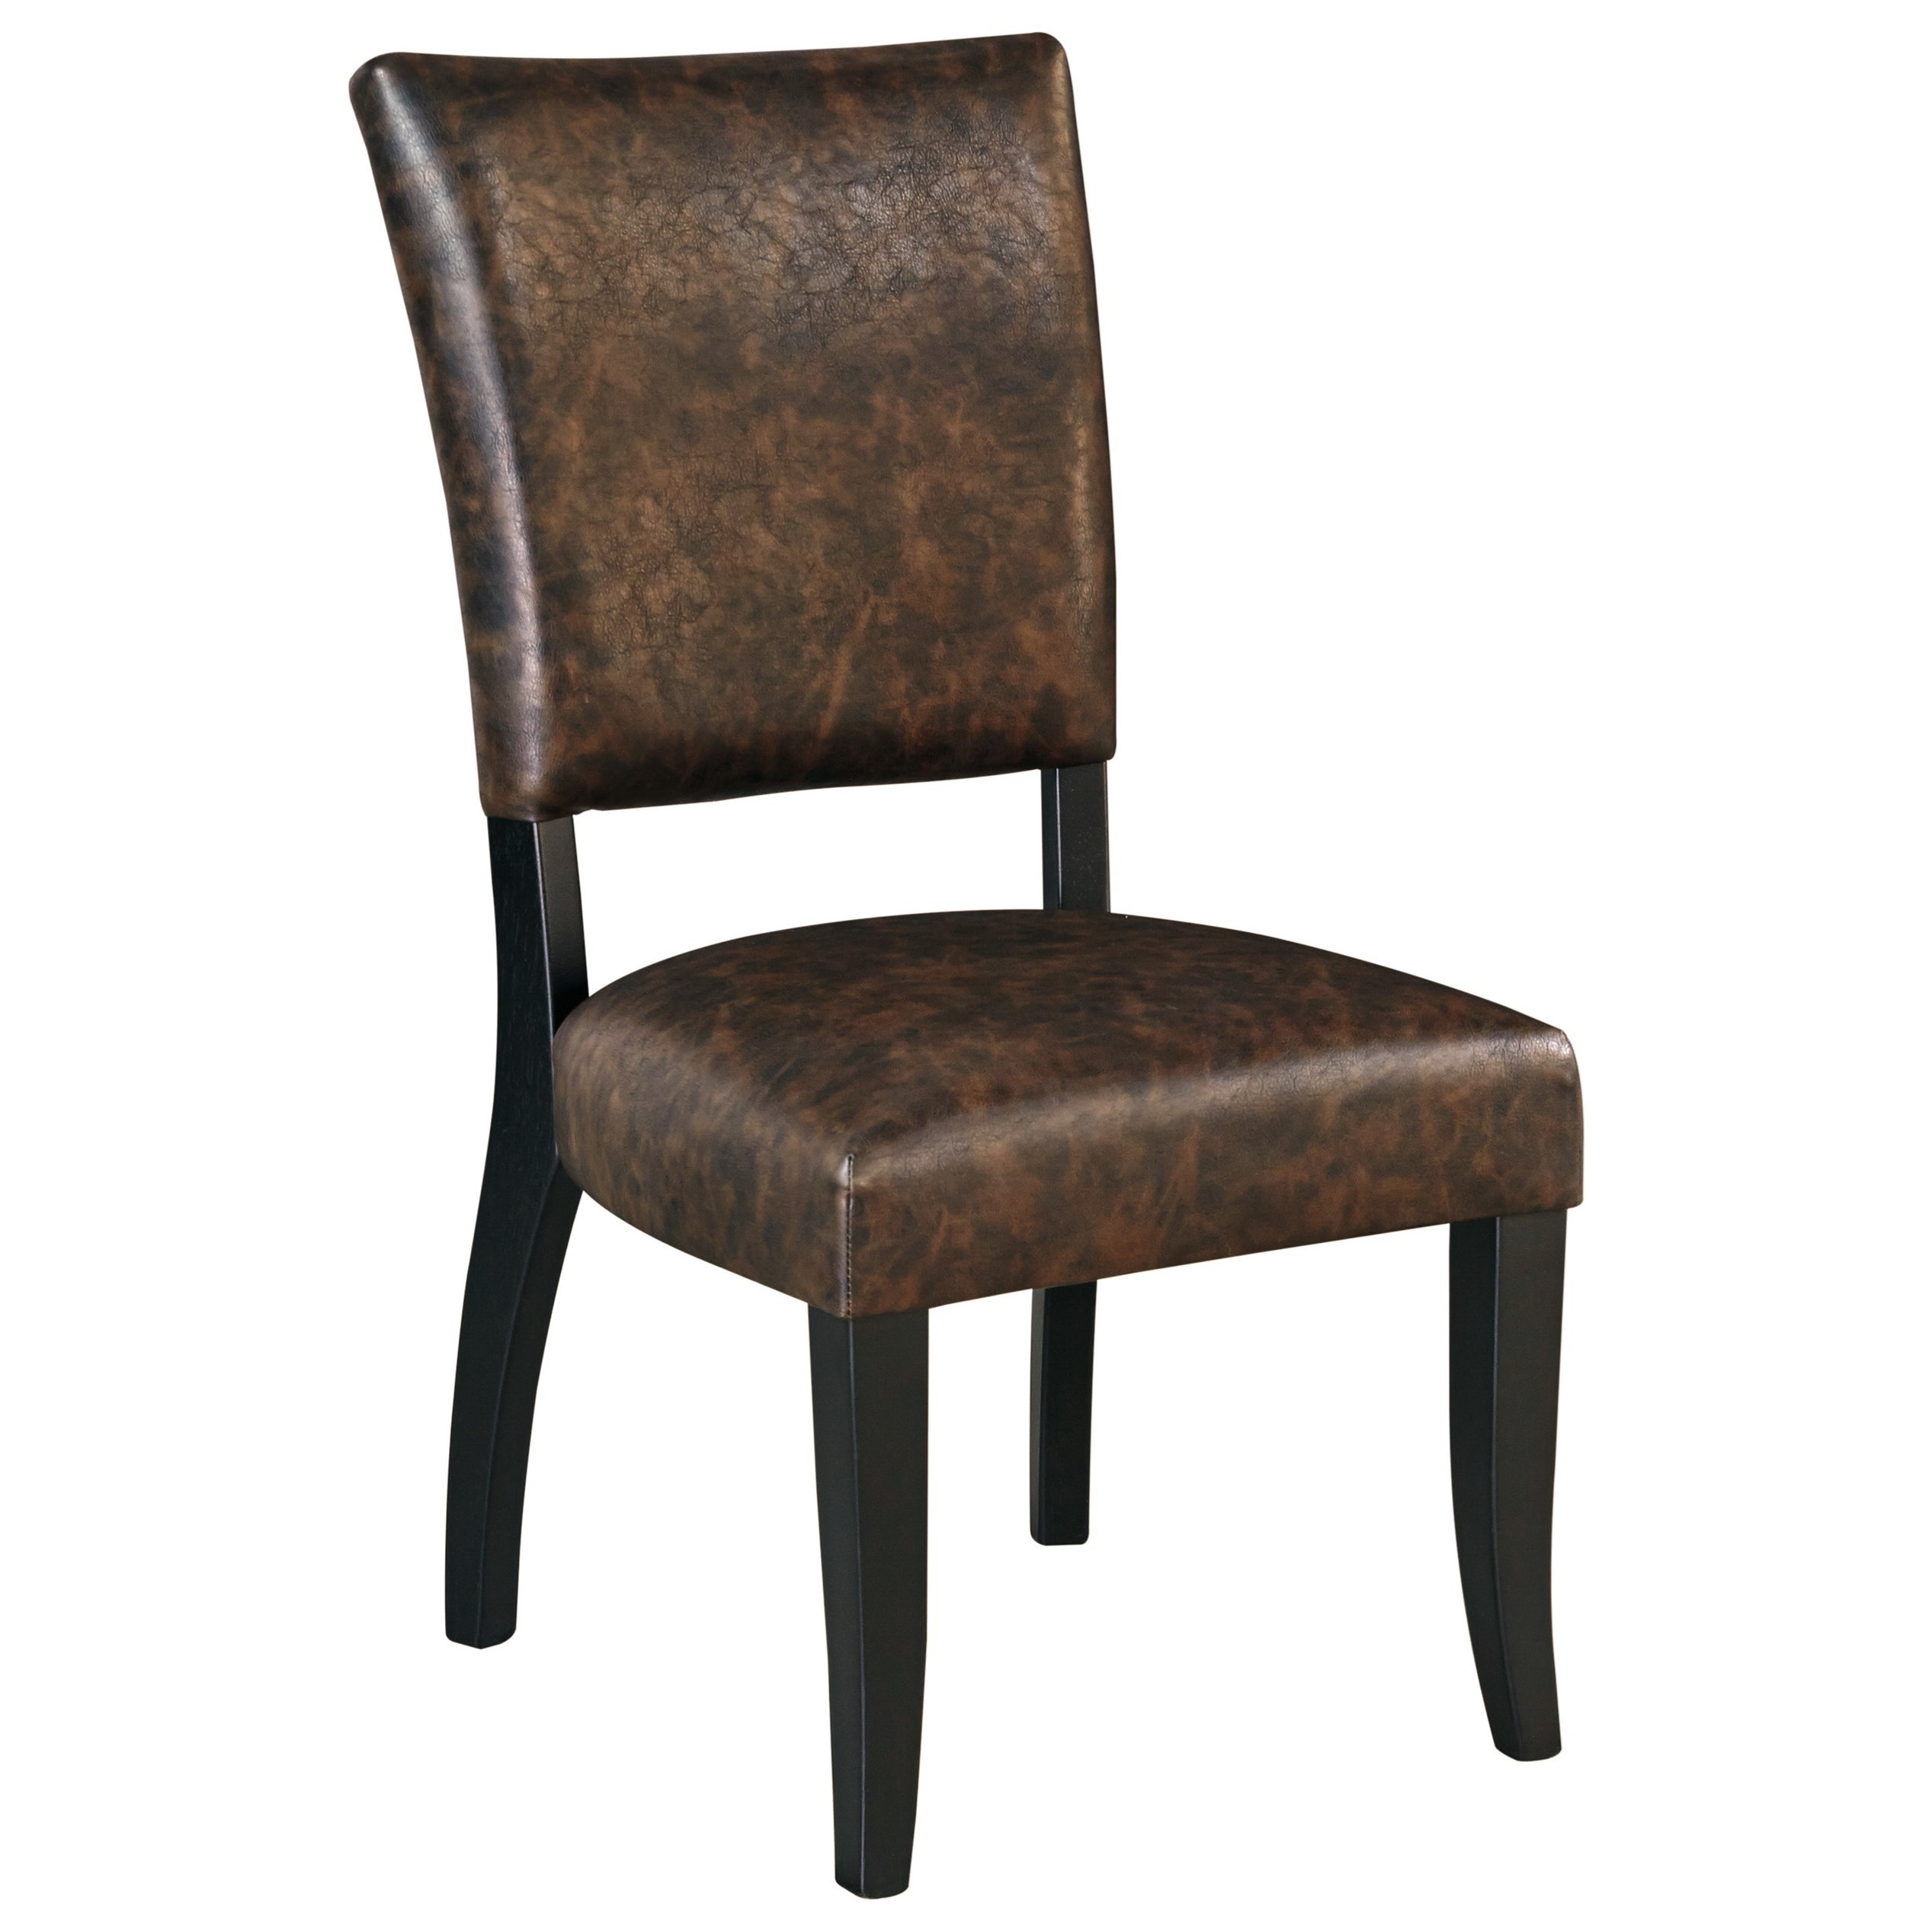 Sommerford Dining Upholstered Side Chair by Signature Design by Ashley at Northeast Factory Direct